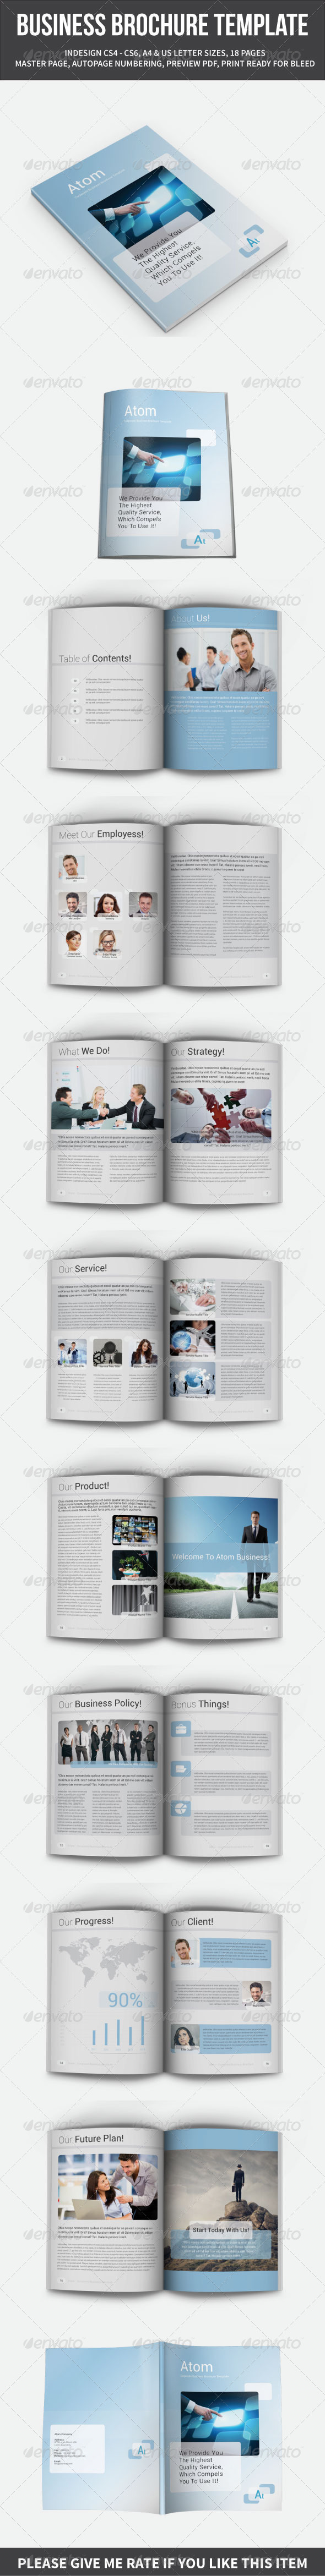 GraphicRiver Business Brochure Template A4 and Letter 18 Pages 8525676